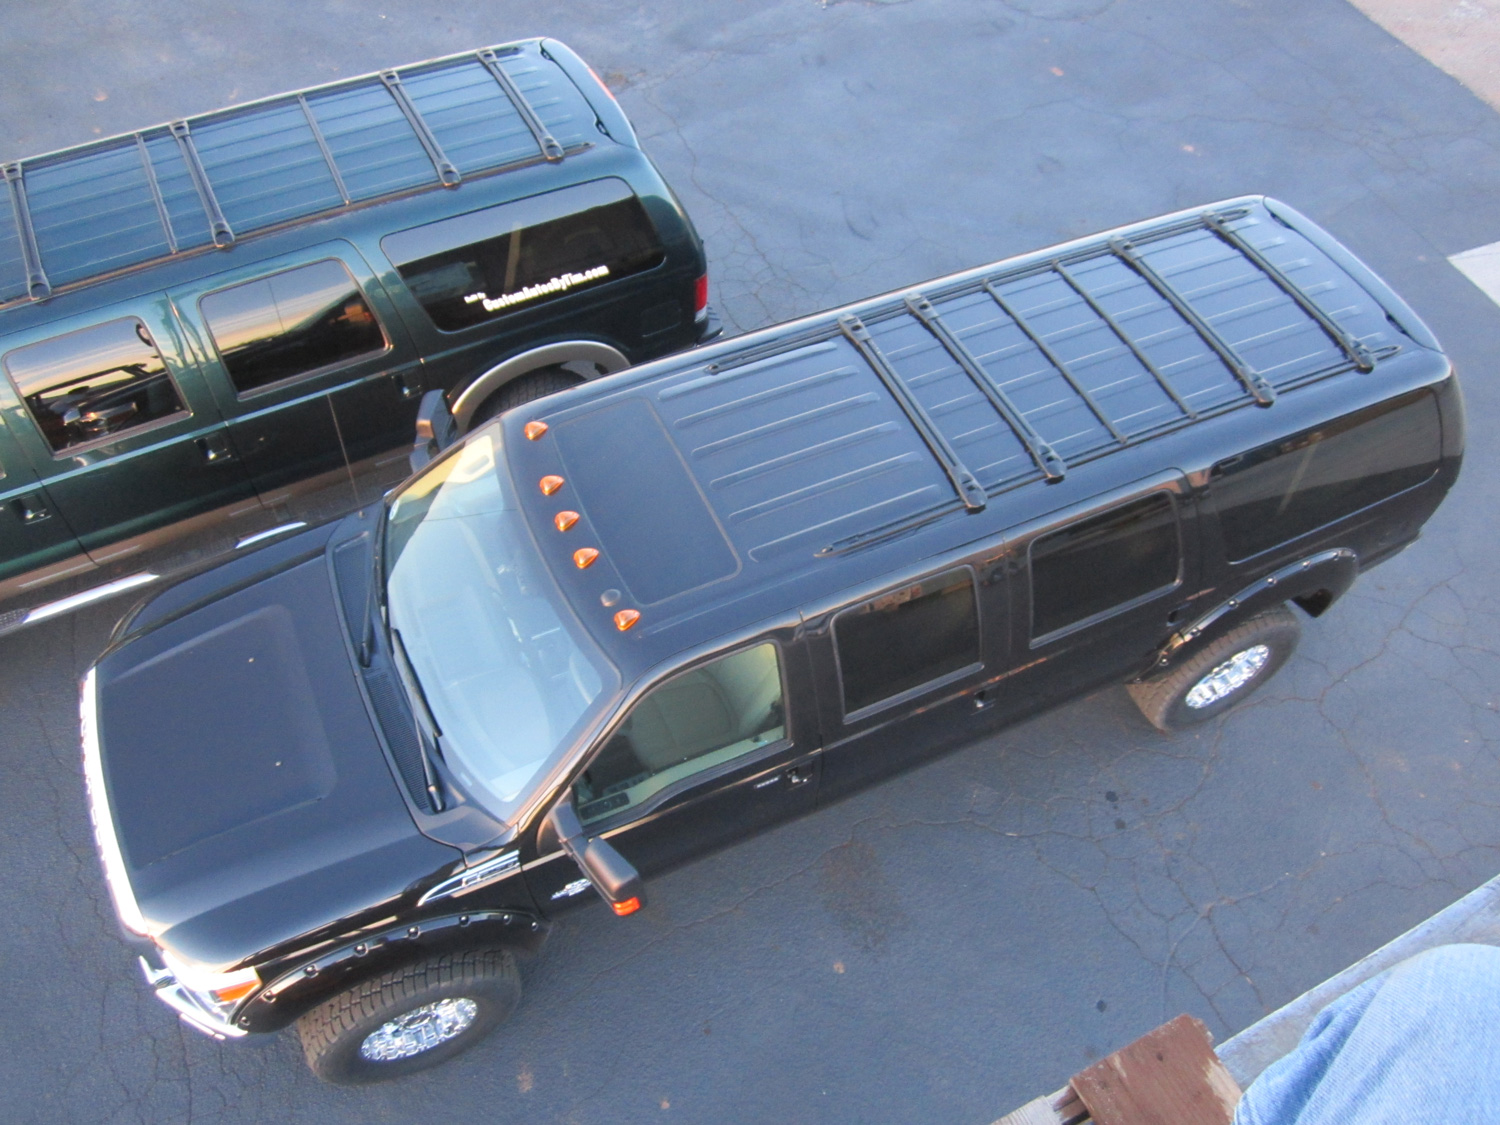 New 6 door Ford Excursion overhead